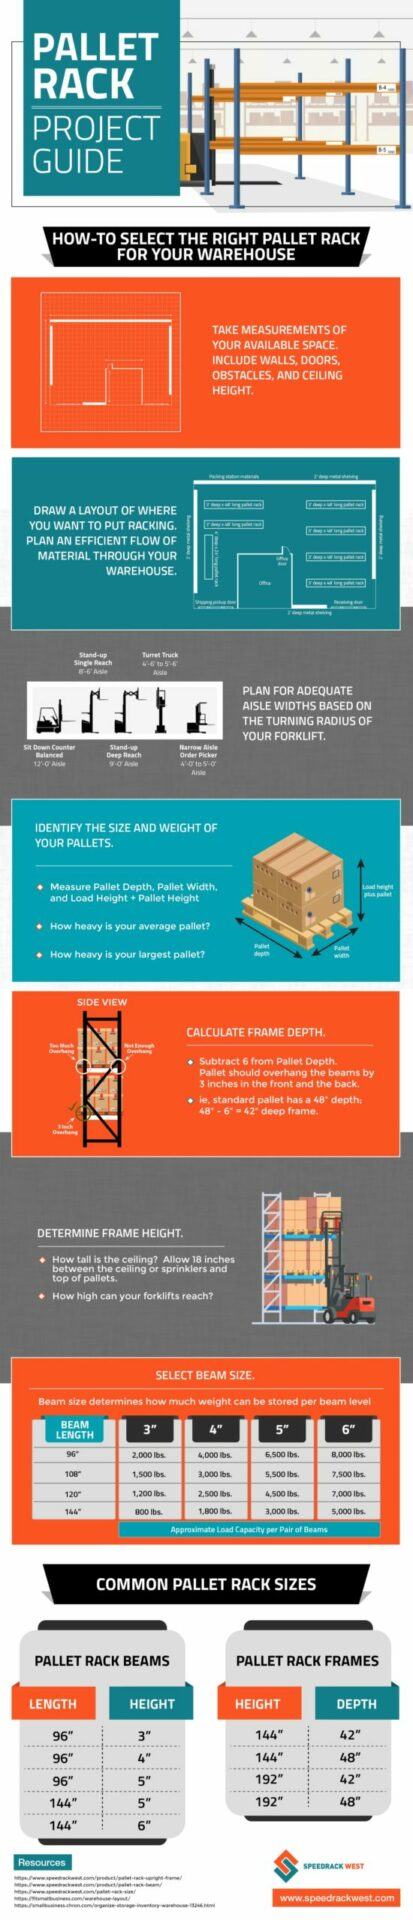 How-To-Select-The-Right-Pallet-Rack-For-Your-Warehouse infographic